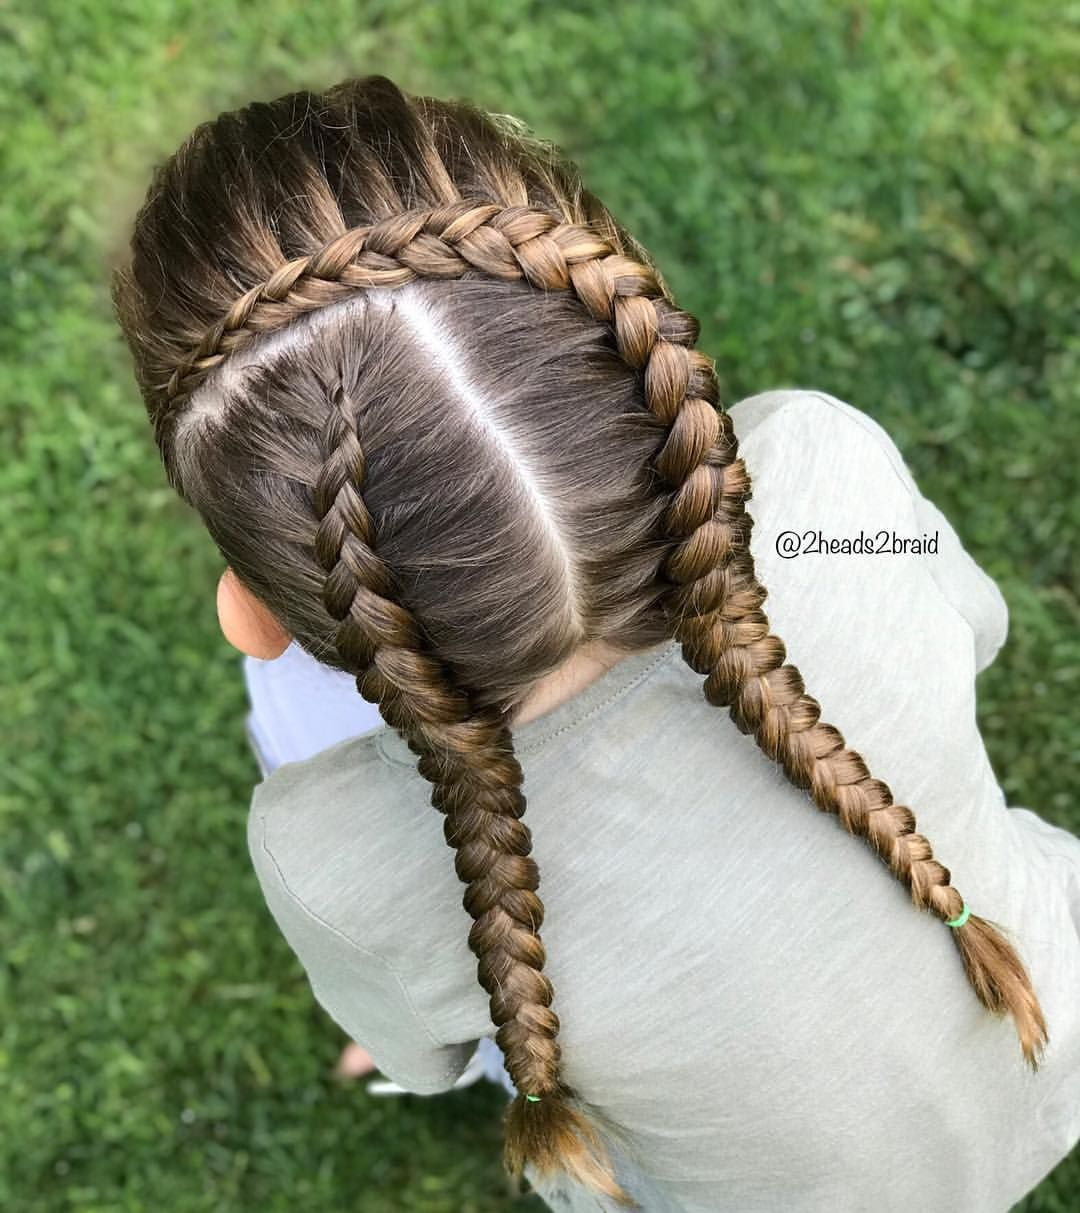 hairinspiration came from @abellasbraids they used 4 strand